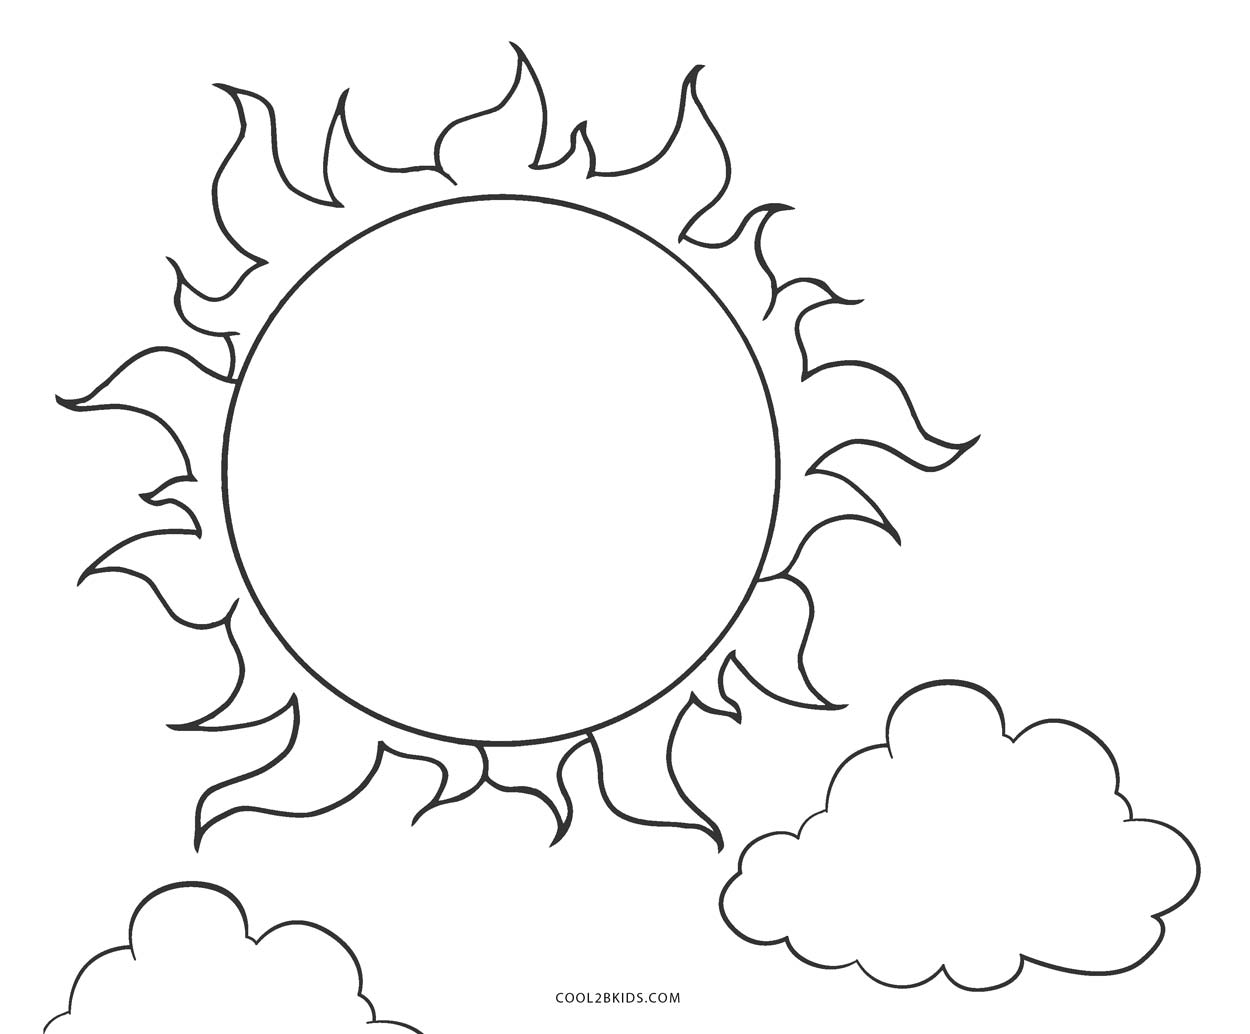 graphic regarding Sun Printable named Printable sunlight coloring web pages